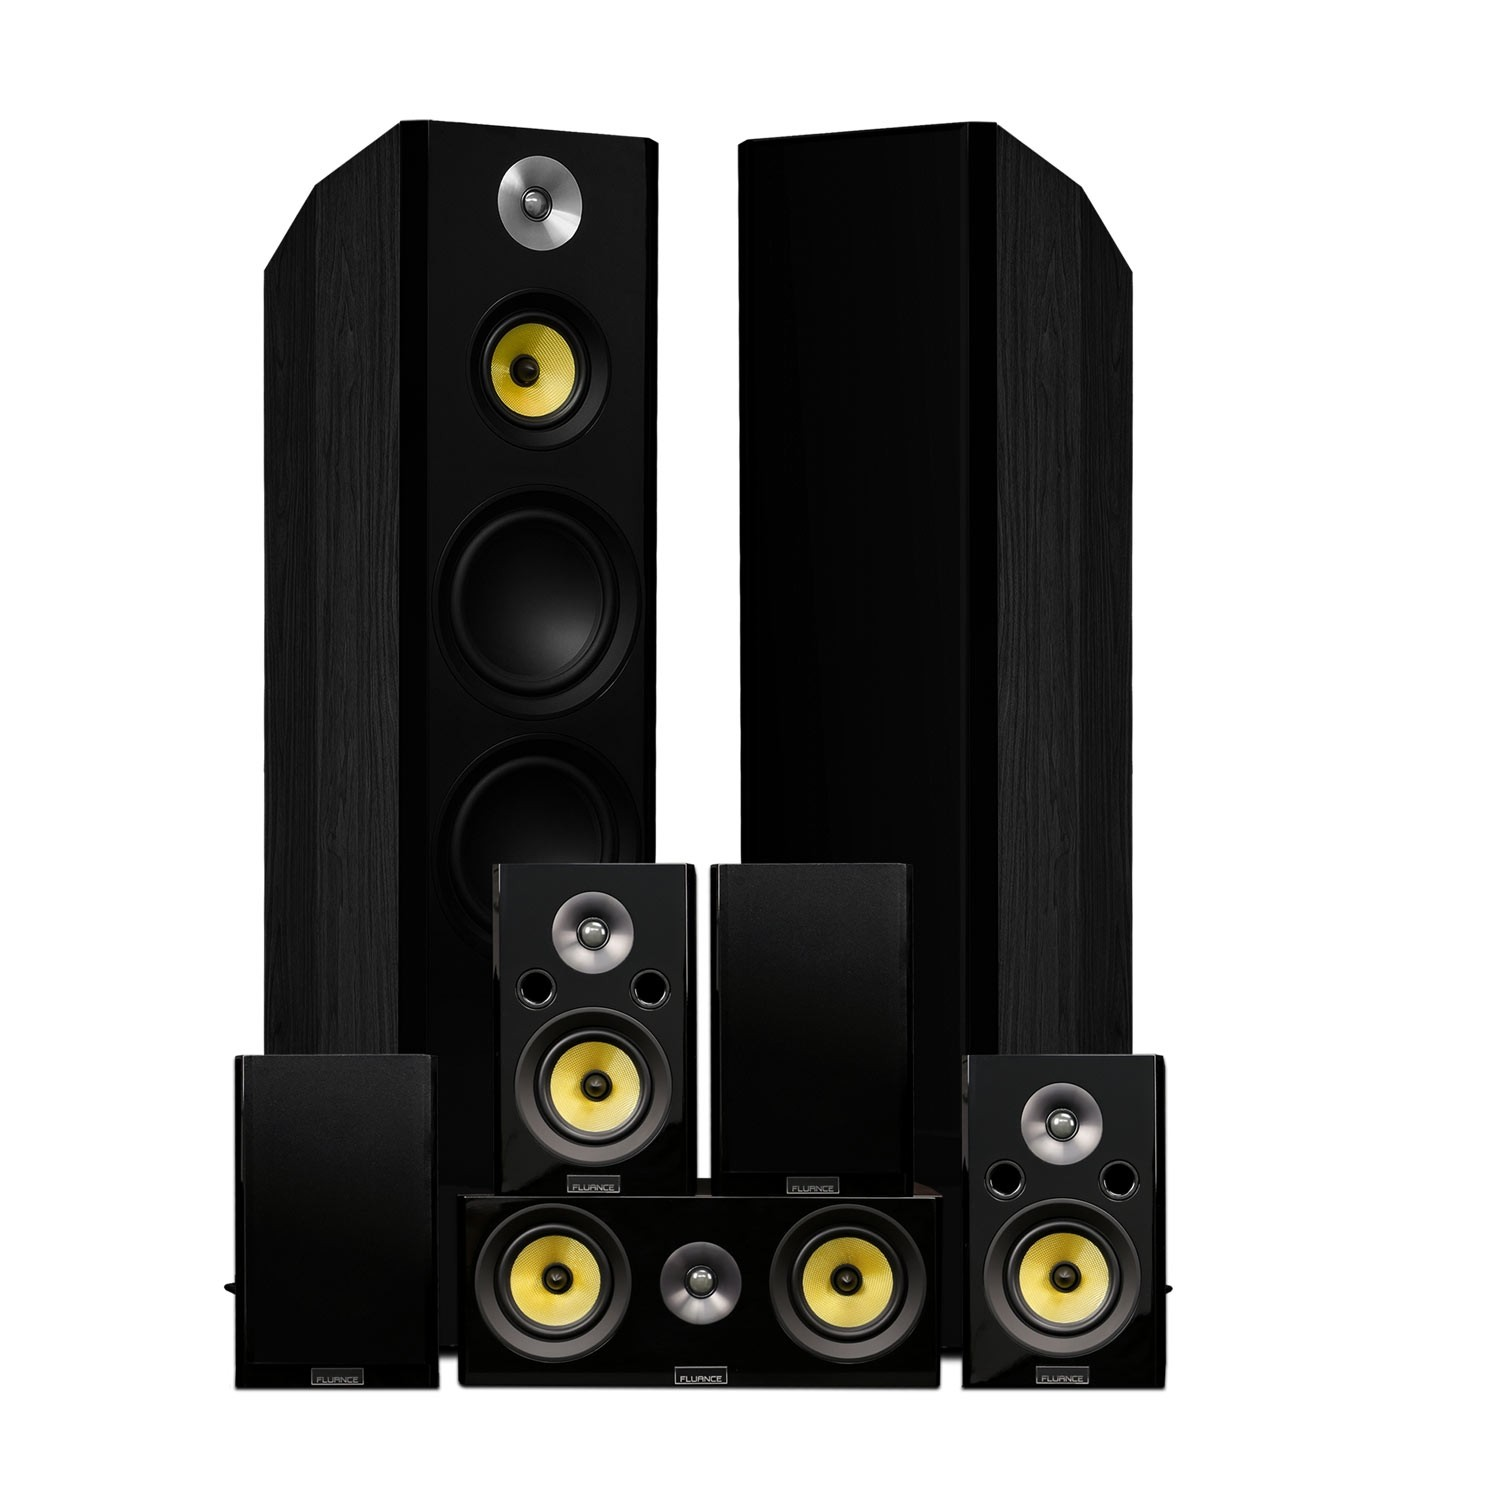 Signature Series Surround Sound Home Theater 7.0 Channel Speaker System